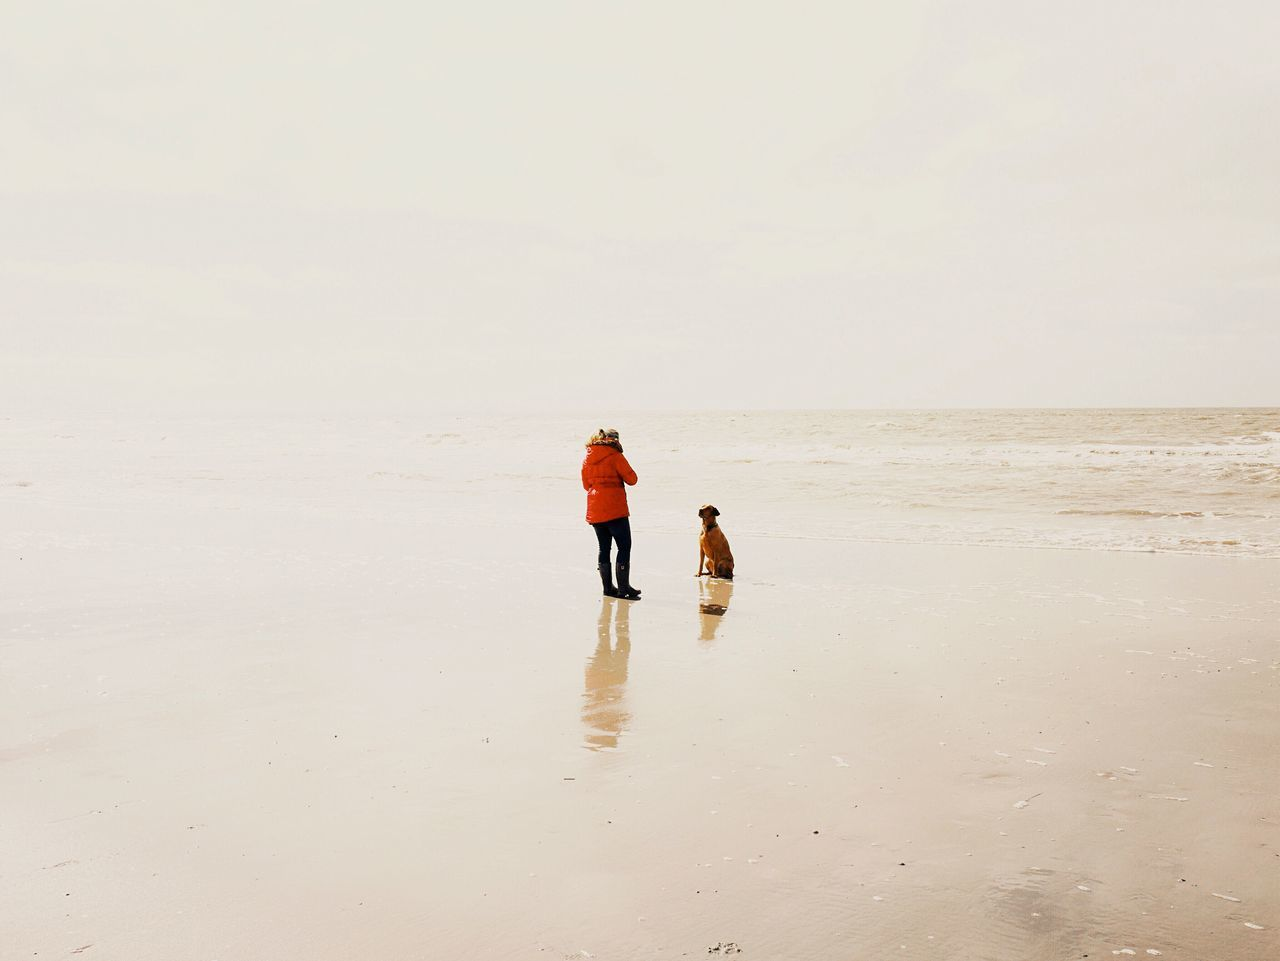 Woman with her dog , Sankt Peter -Ording The Photojournalist - 2015 EyeEm Awards Capture The Moment Freedom Beachphotography Sound Of Life Deceptively Simple Edge Of The World Creative Light And Shadow Perfect Match Picturing Individuality My Best Photo 2015 Adventure Buddies Pastel Power Q Quiet Landscapes With WhiteWall The KIOMI Collection People Of The Oceans 43 Golden Moments On The Way Colour Of Life People And Places Miles Away Long Goodbye The Great Outdoors - 2017 EyeEm Awards Let's Go. Together.